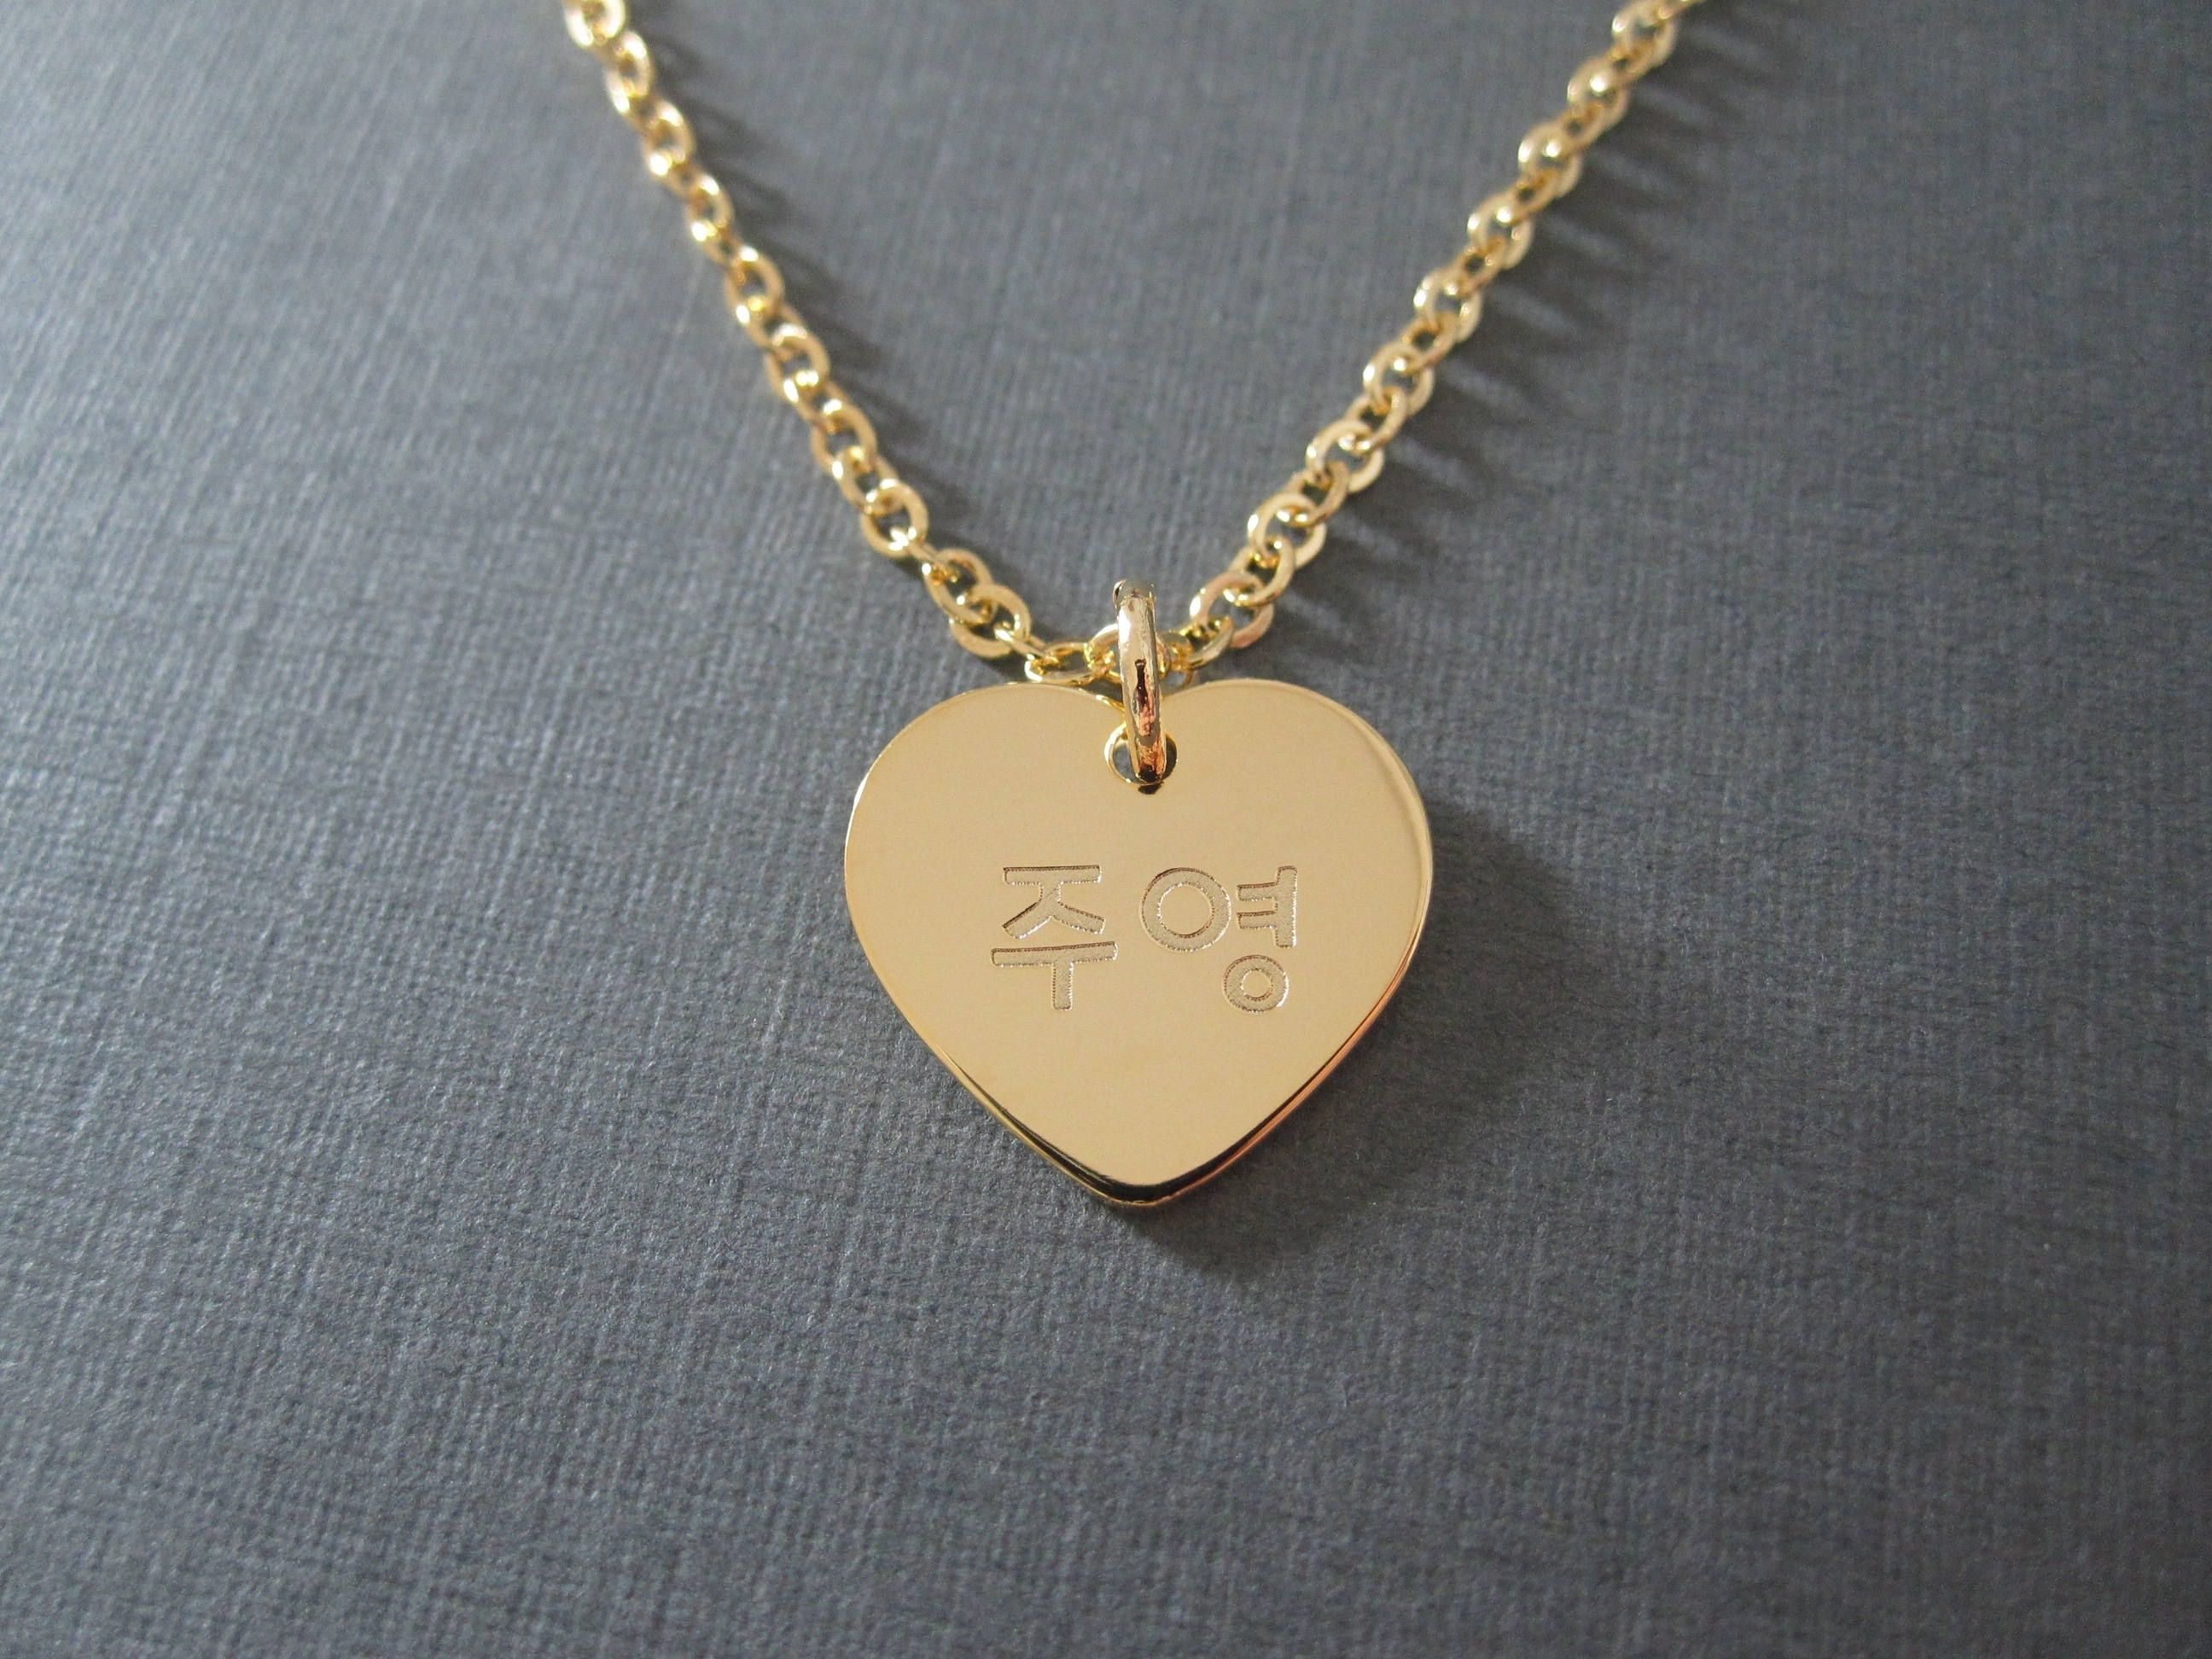 Personalized gold engraved korean name heart necklace pendant